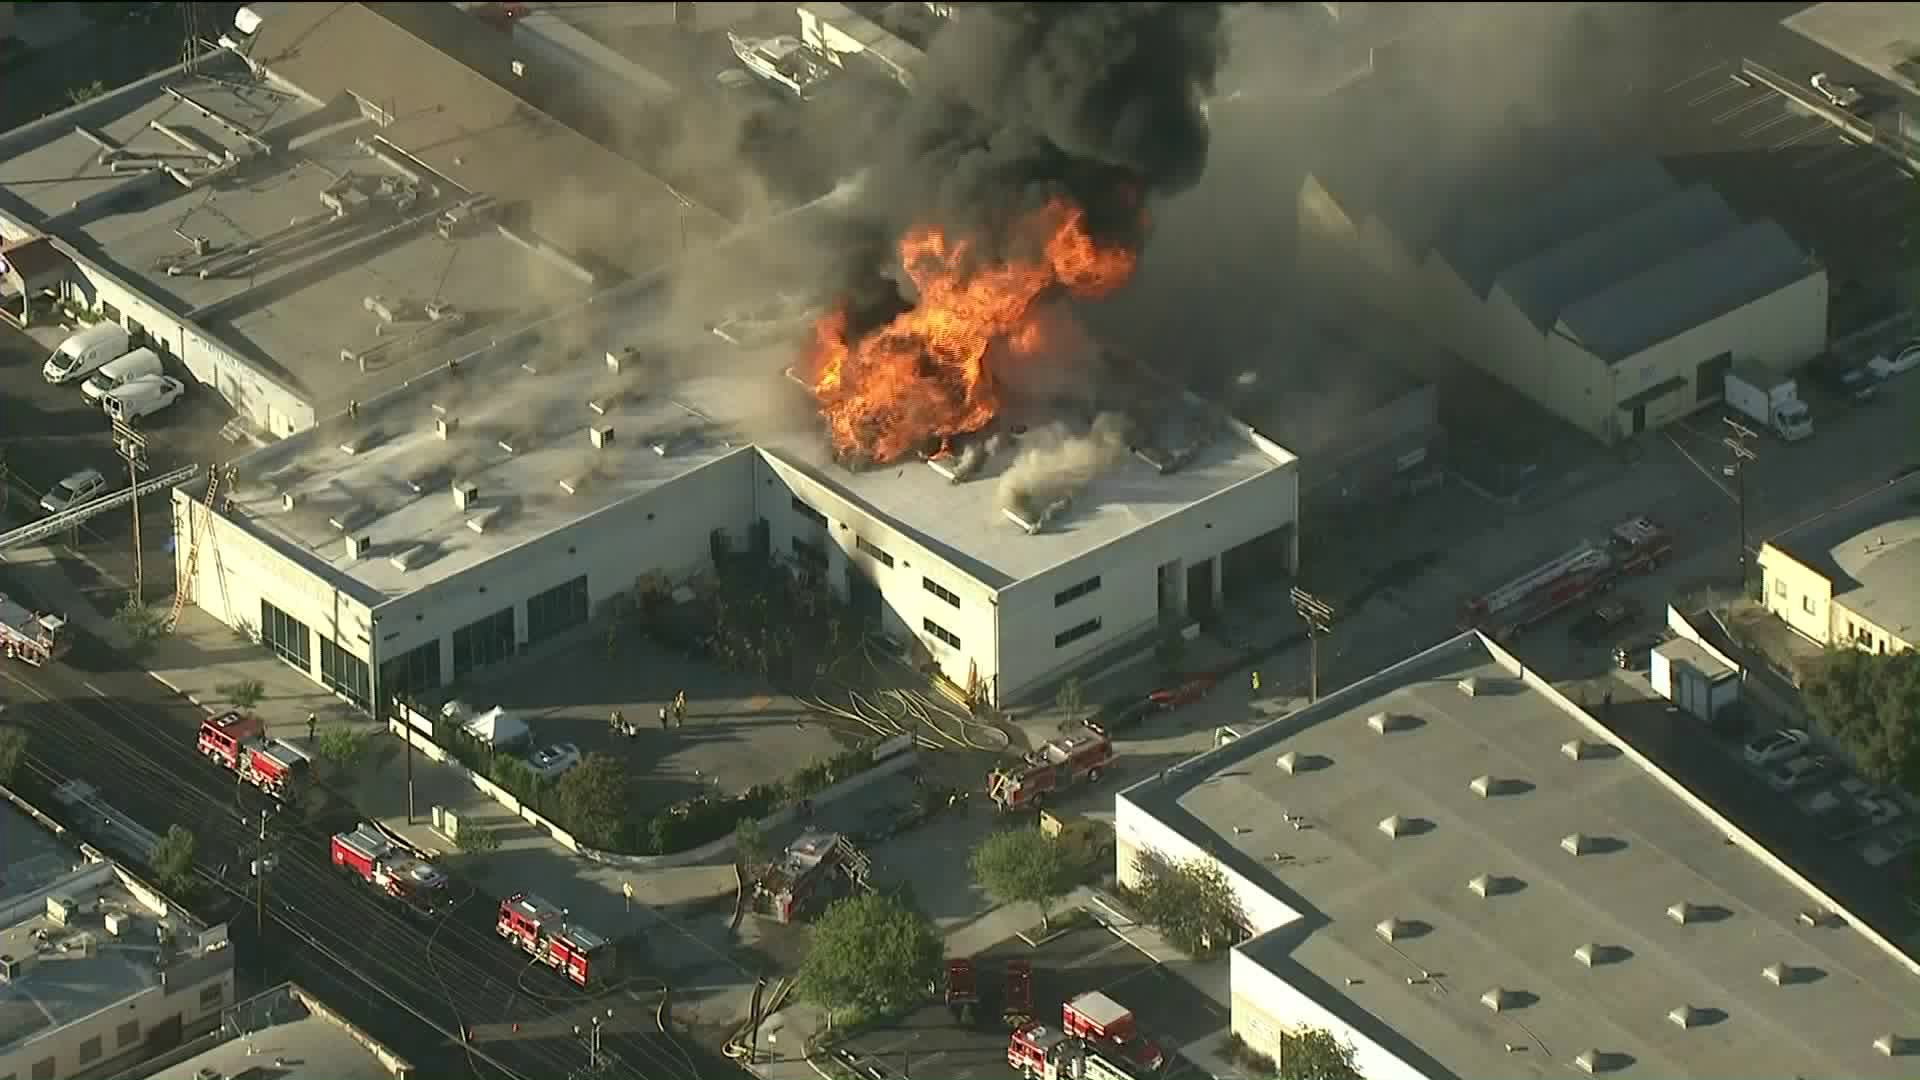 Heavy smoke rises as flames engulf a building in Glassell Park on Sept. 17, 2018. (Credit: KTLA)